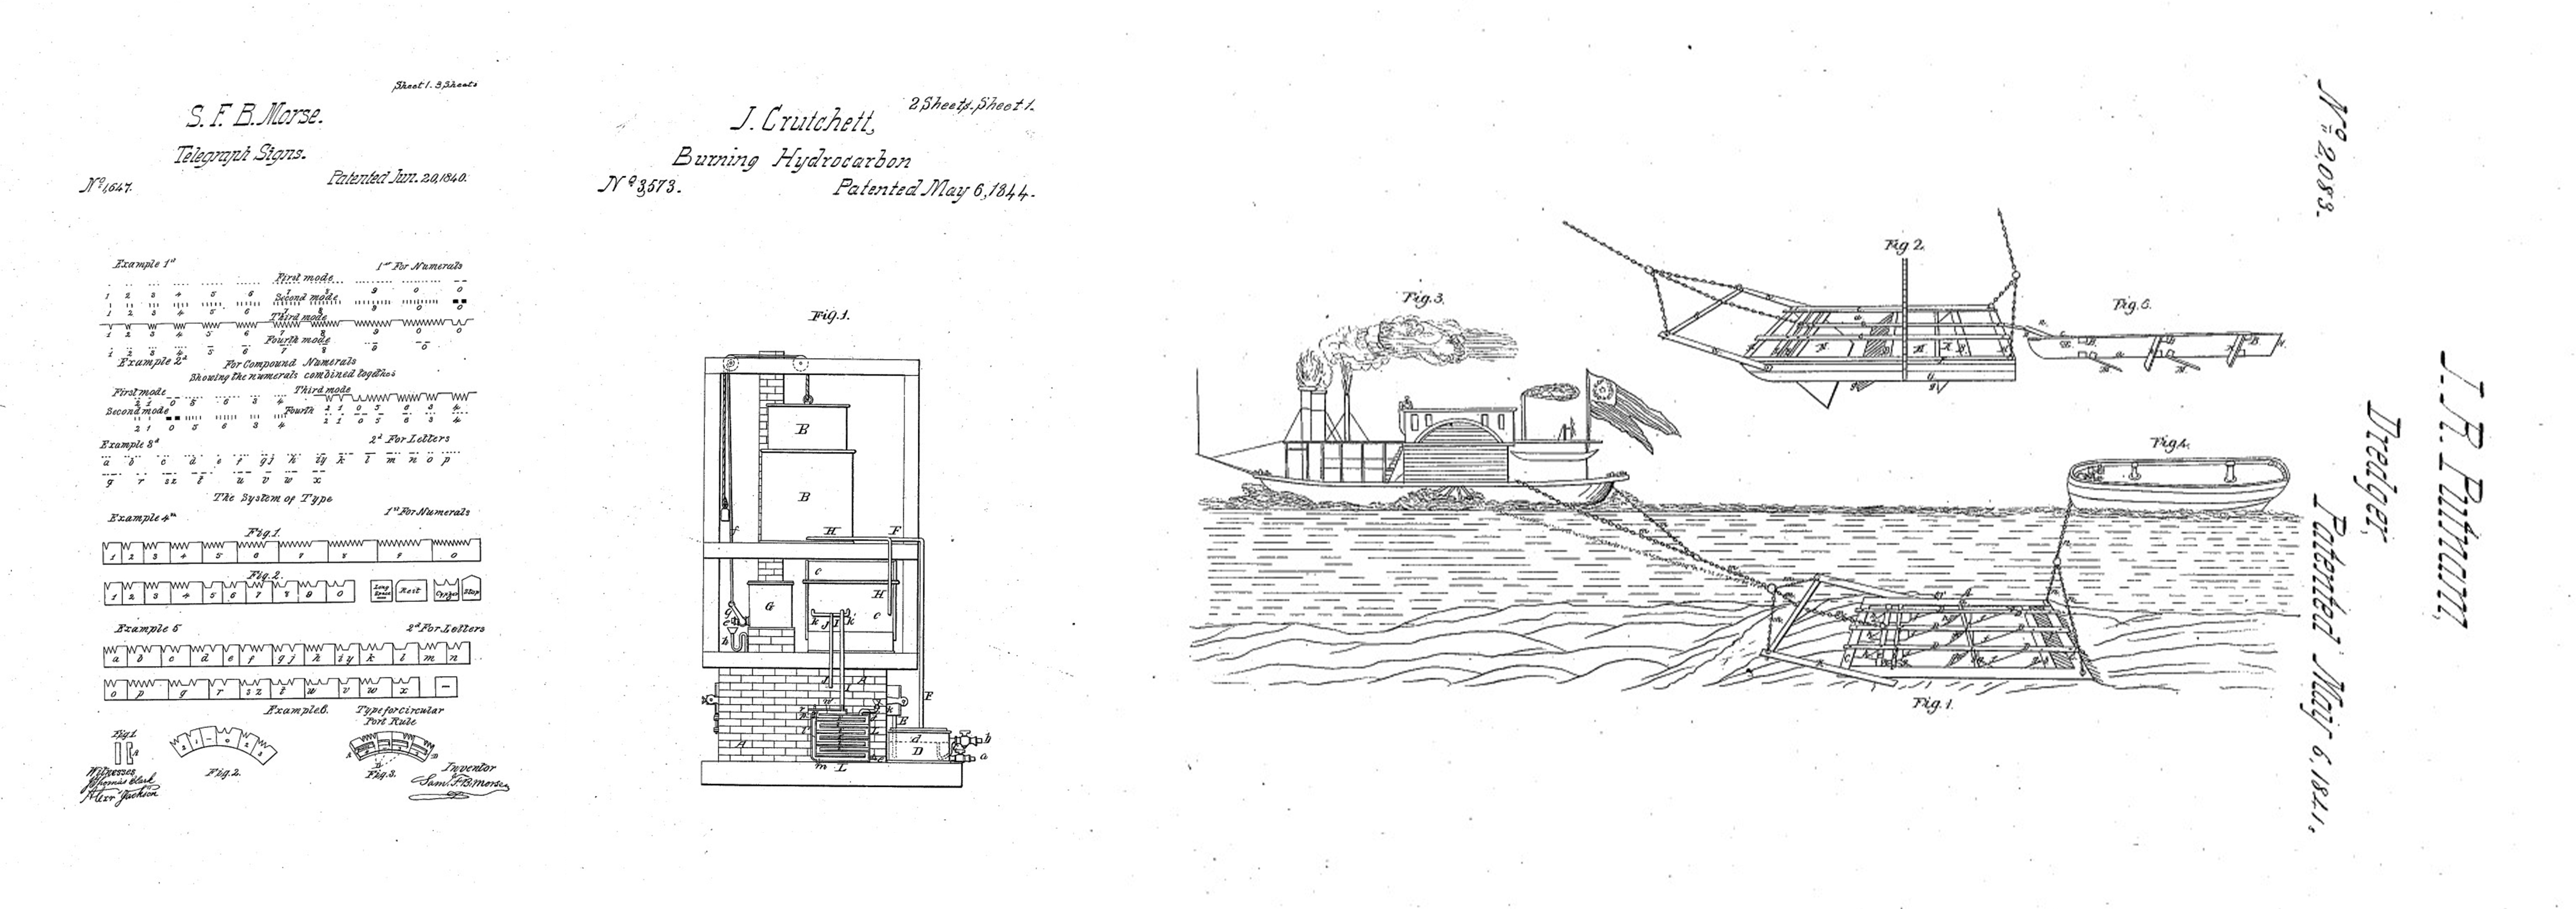 The US Government has, in the past, actively promoted innovation in physical infrastructure through licensing agreements with patent holders. A short list is shown here. Left: prototyping the telegraph system invented by Samuel B. Morse (US1647). Middle: evaluating the viability of artificial light in the urban environment using a method for burning hydrocarbon developed by James Crutchett (US3573). Right: Conducting experimental trials of J.R. Putnam's dredge machine for the removal of mud clumps at the mouth of the Mississippi River (US2083). Images from USPTO.gov.